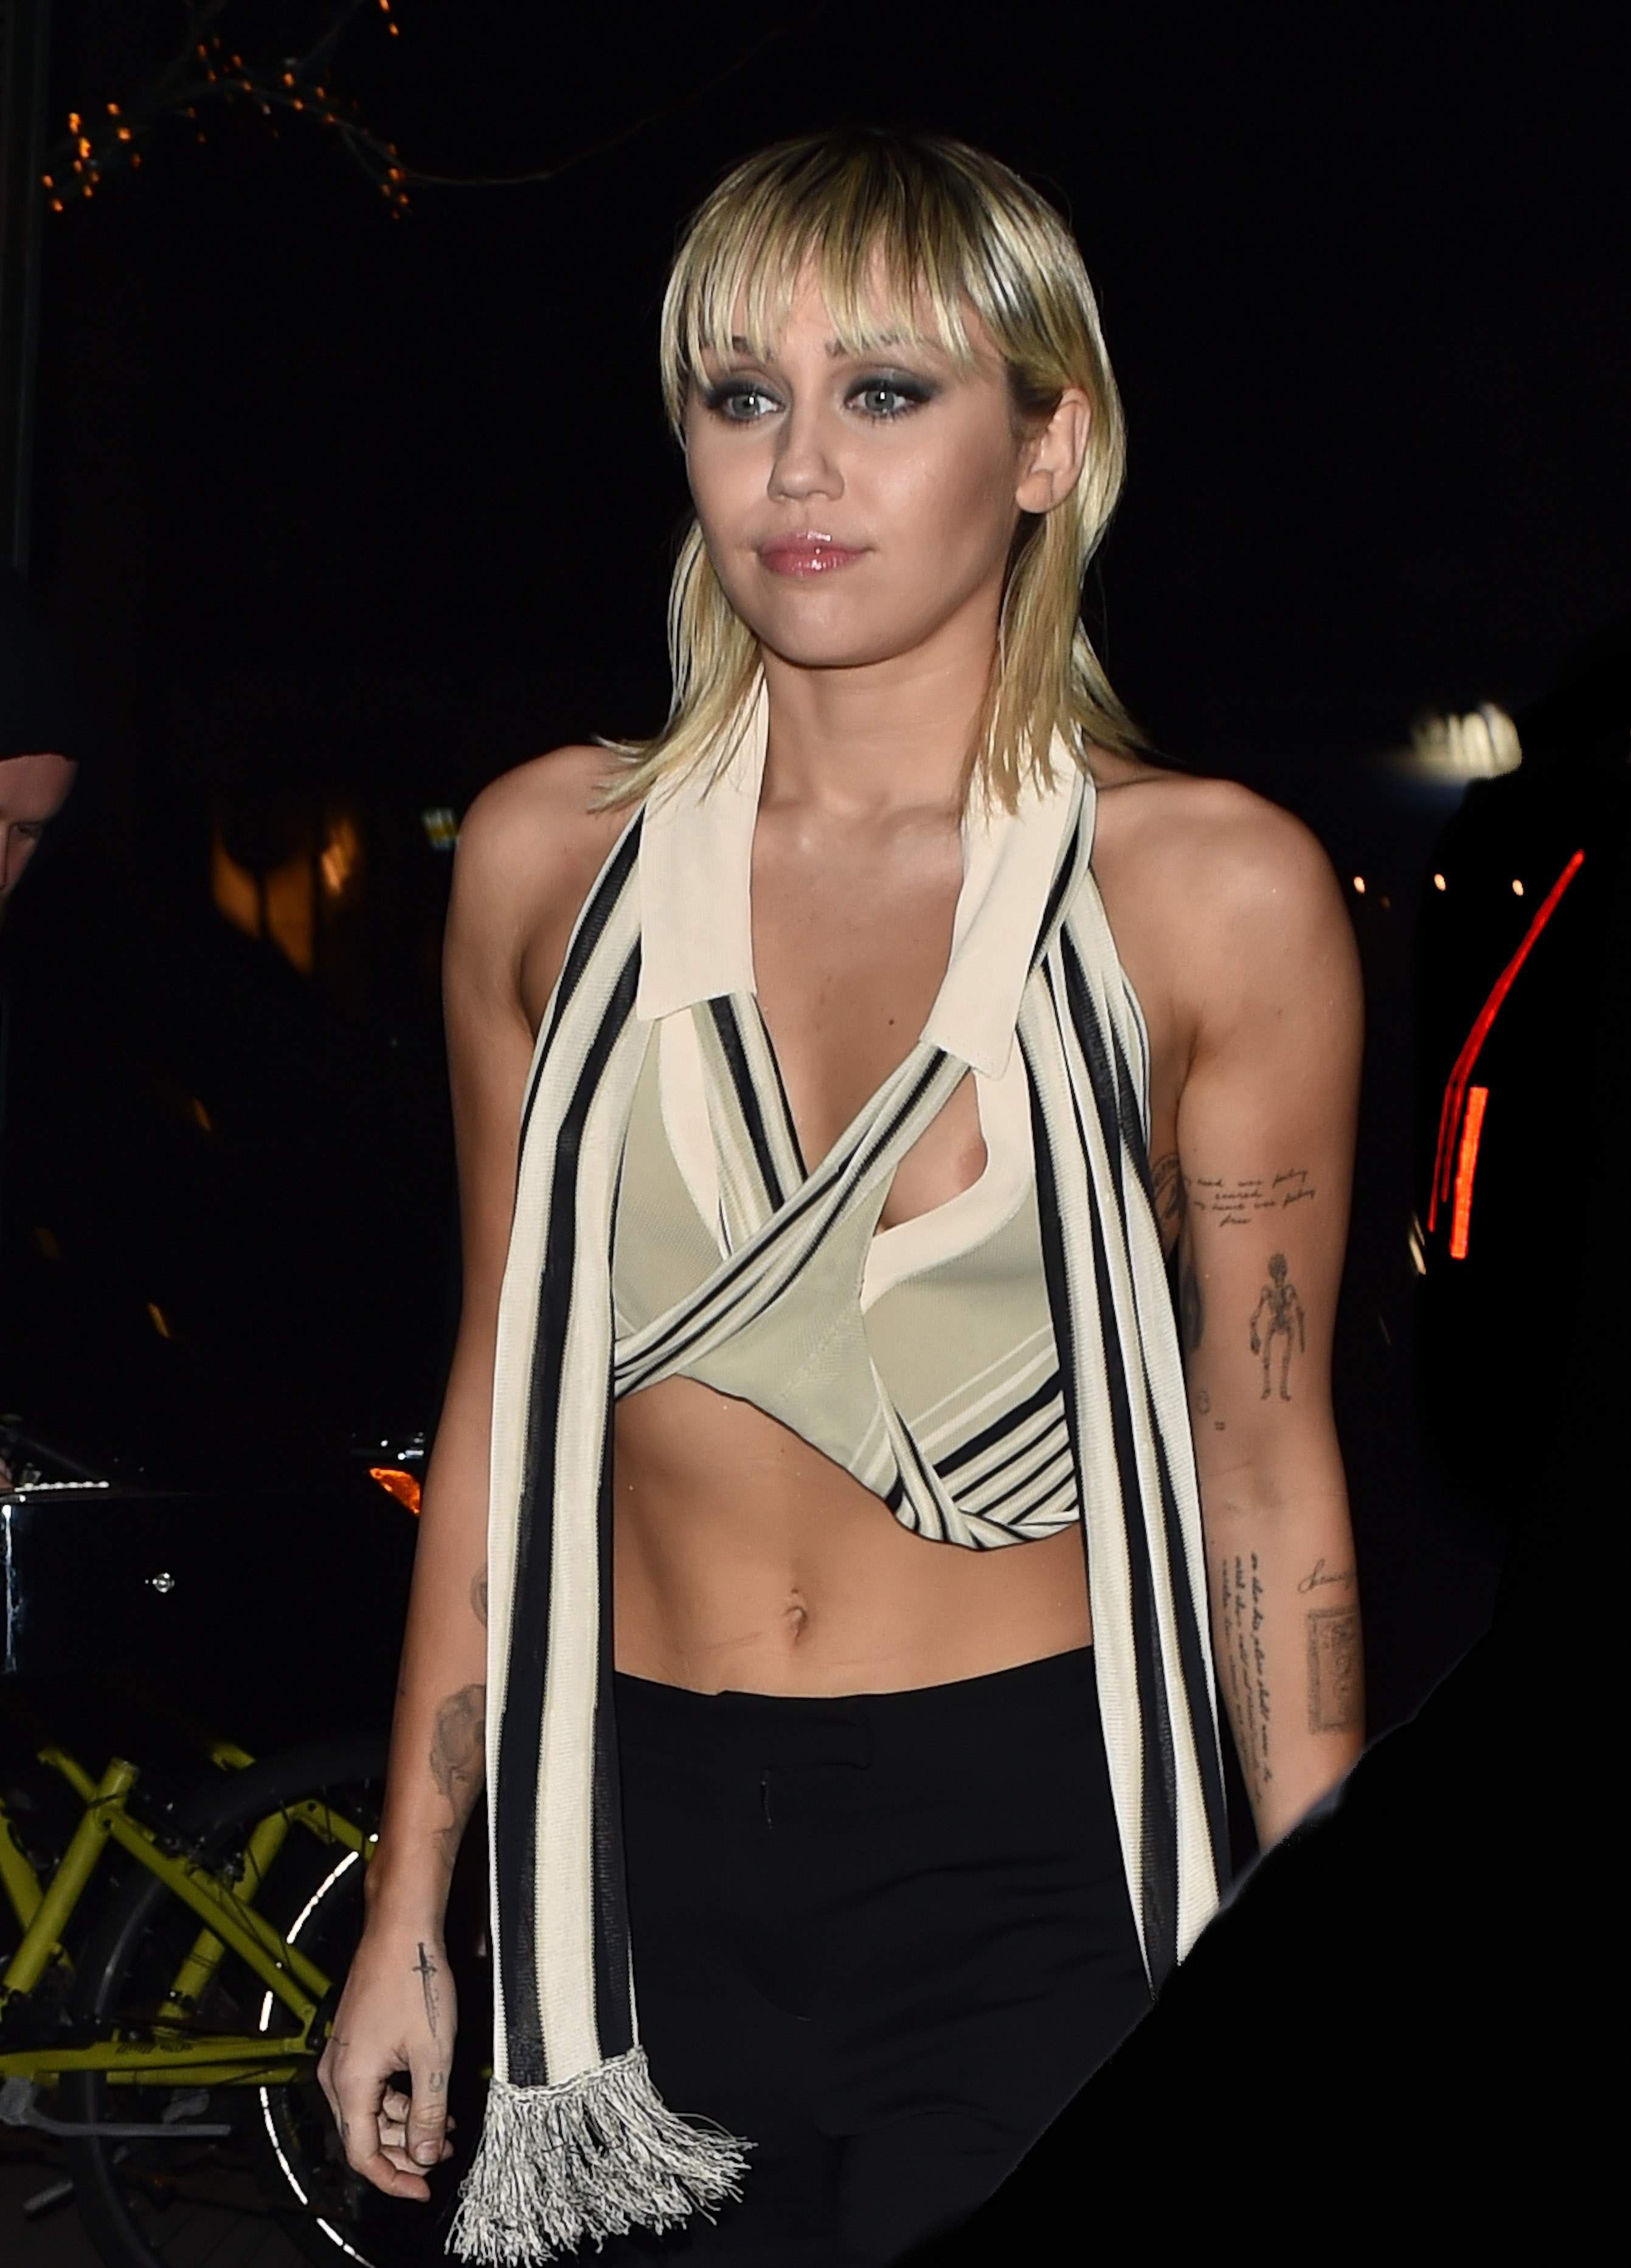 Miley Cyrus Nipples Outside the Bowery Hotel in NYC